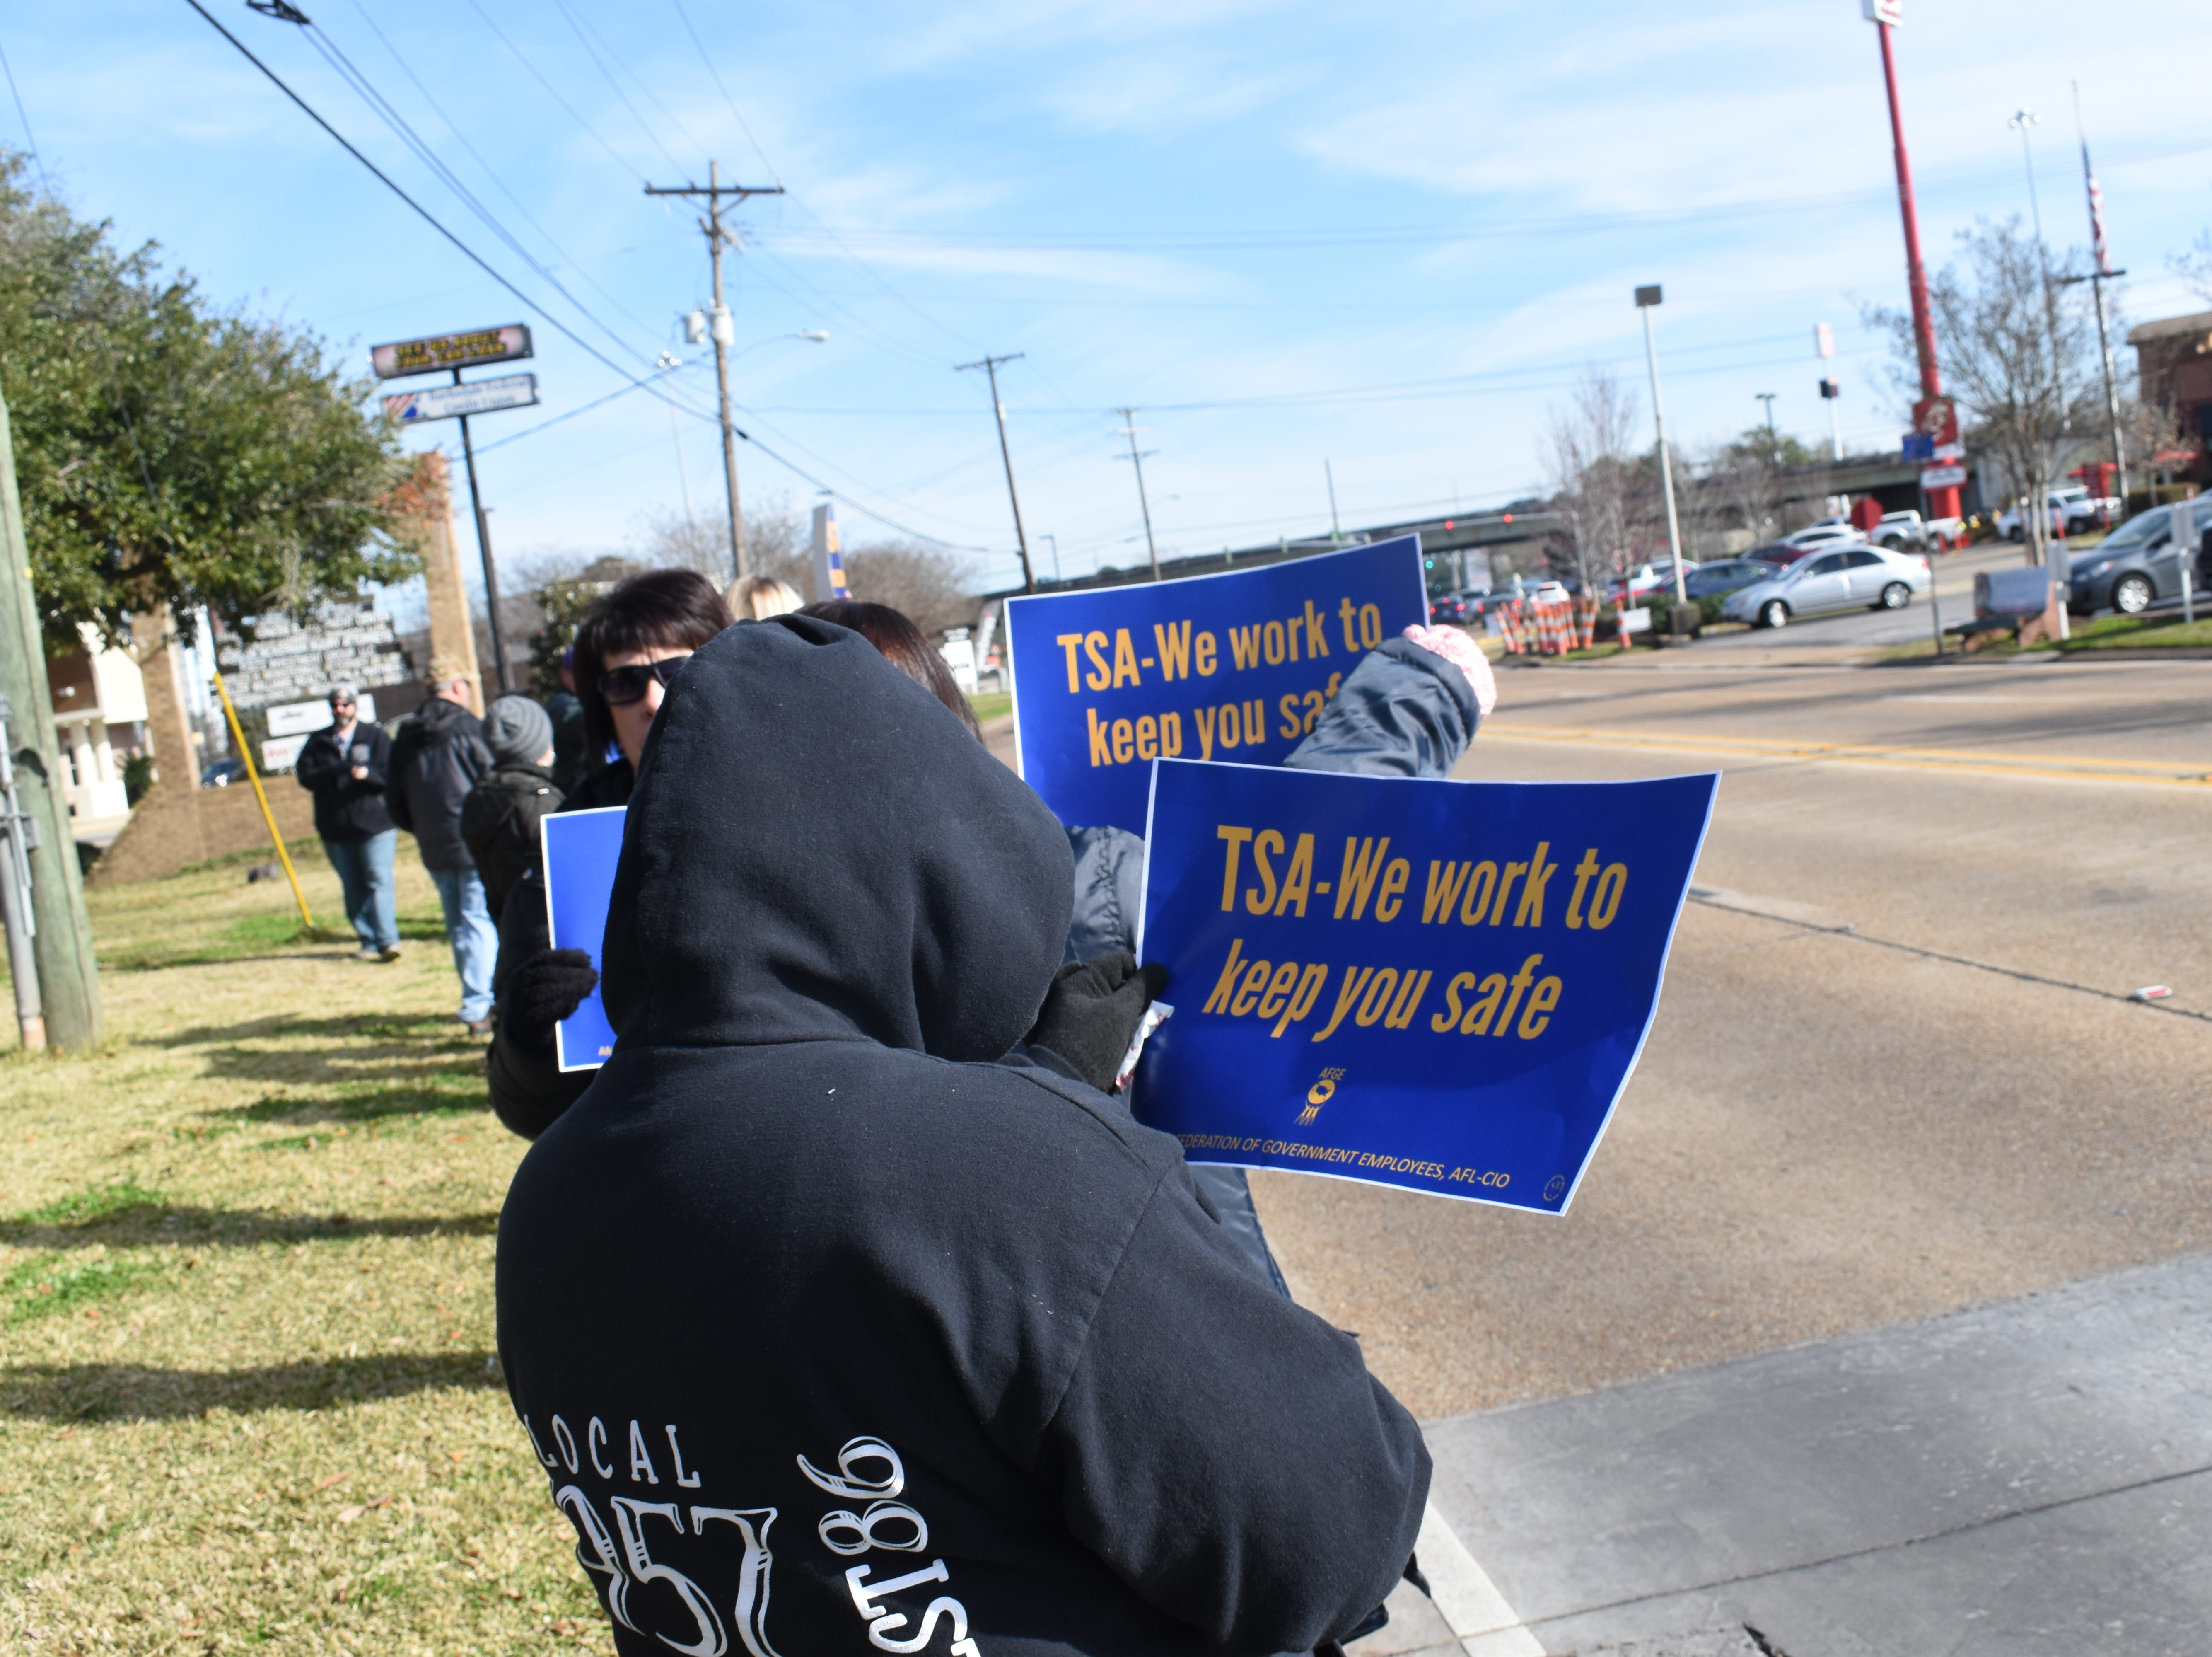 American Federation of Government Employees Local 1034 rally outside U.S. Sen.Bill Cassidy's office located on Jackson Street Extension on Friday, Jan. 25, 2019. Most were from the Federal Correctional Complexes in Pollock and Oakdale.The rally continued at outside the office of U.S. Sen. John Kennedy located on Coliseum Blvd. Approximately 50 people participated in the rally. 